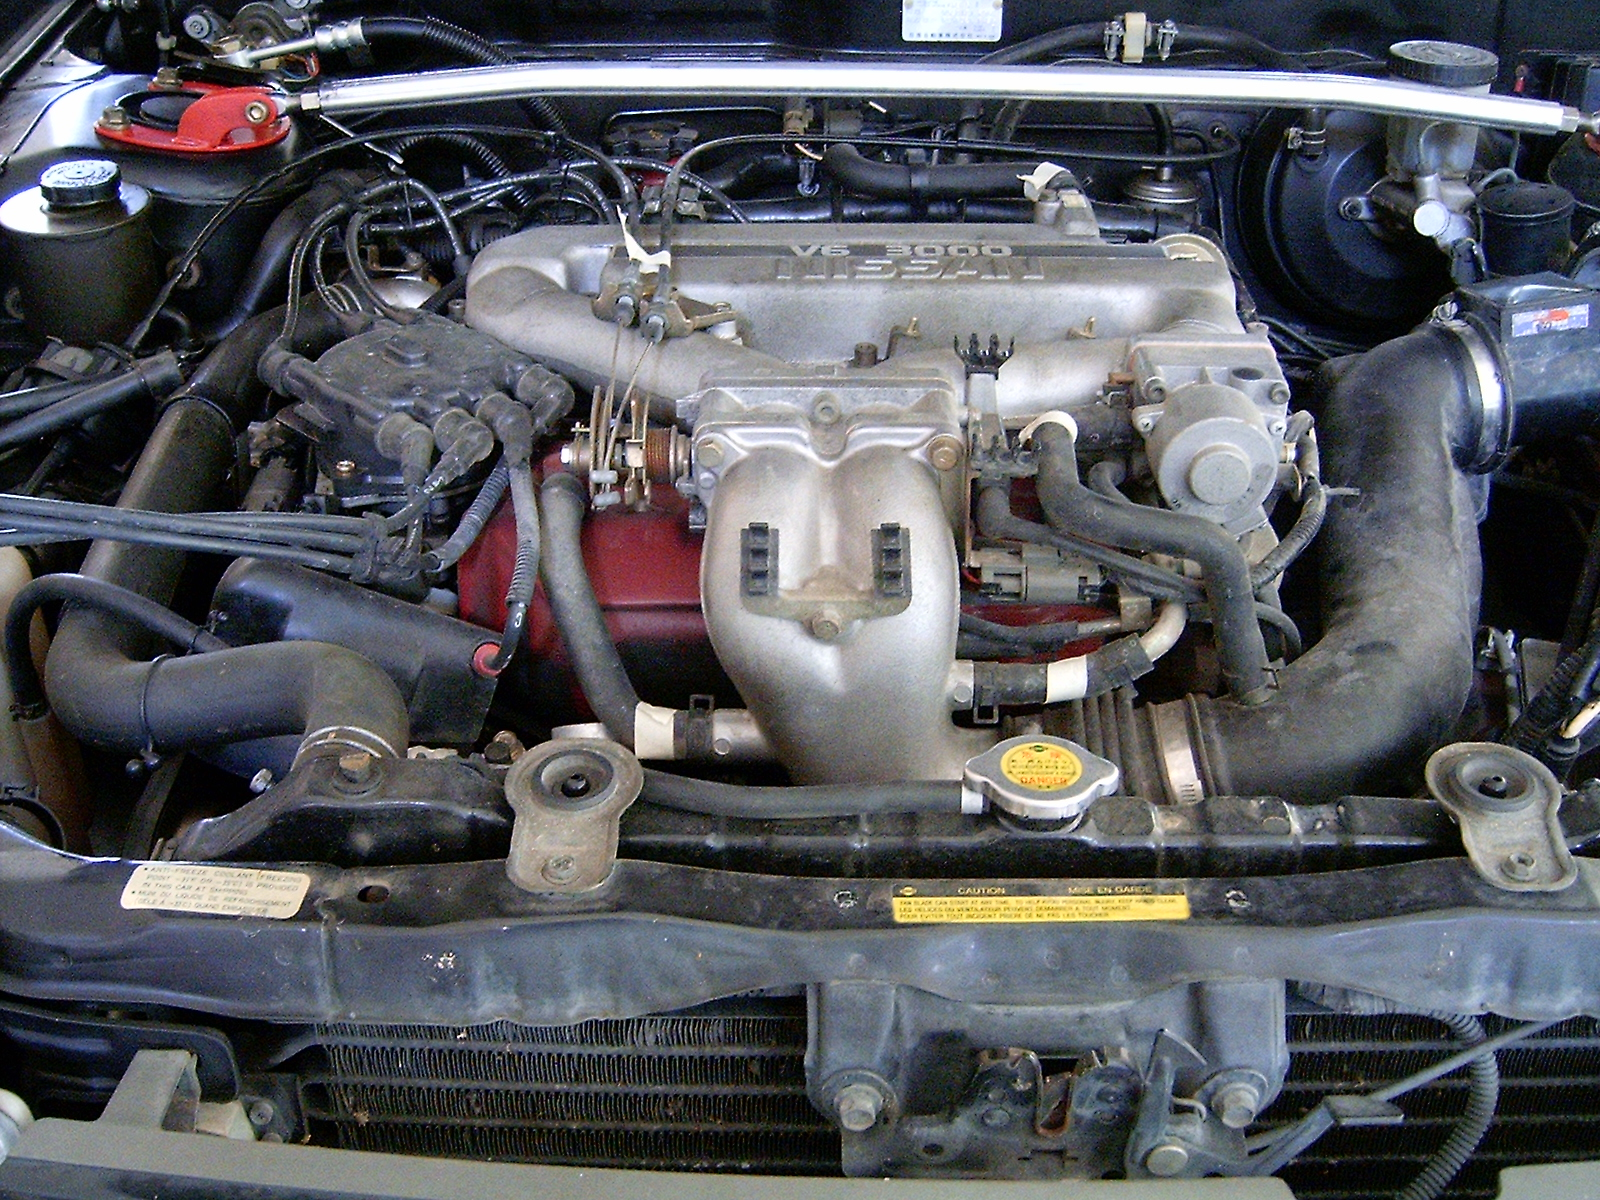 1991 nissan maxima information and photos zombiedrive 1991 nissan maxima 9 nissan maxima 9